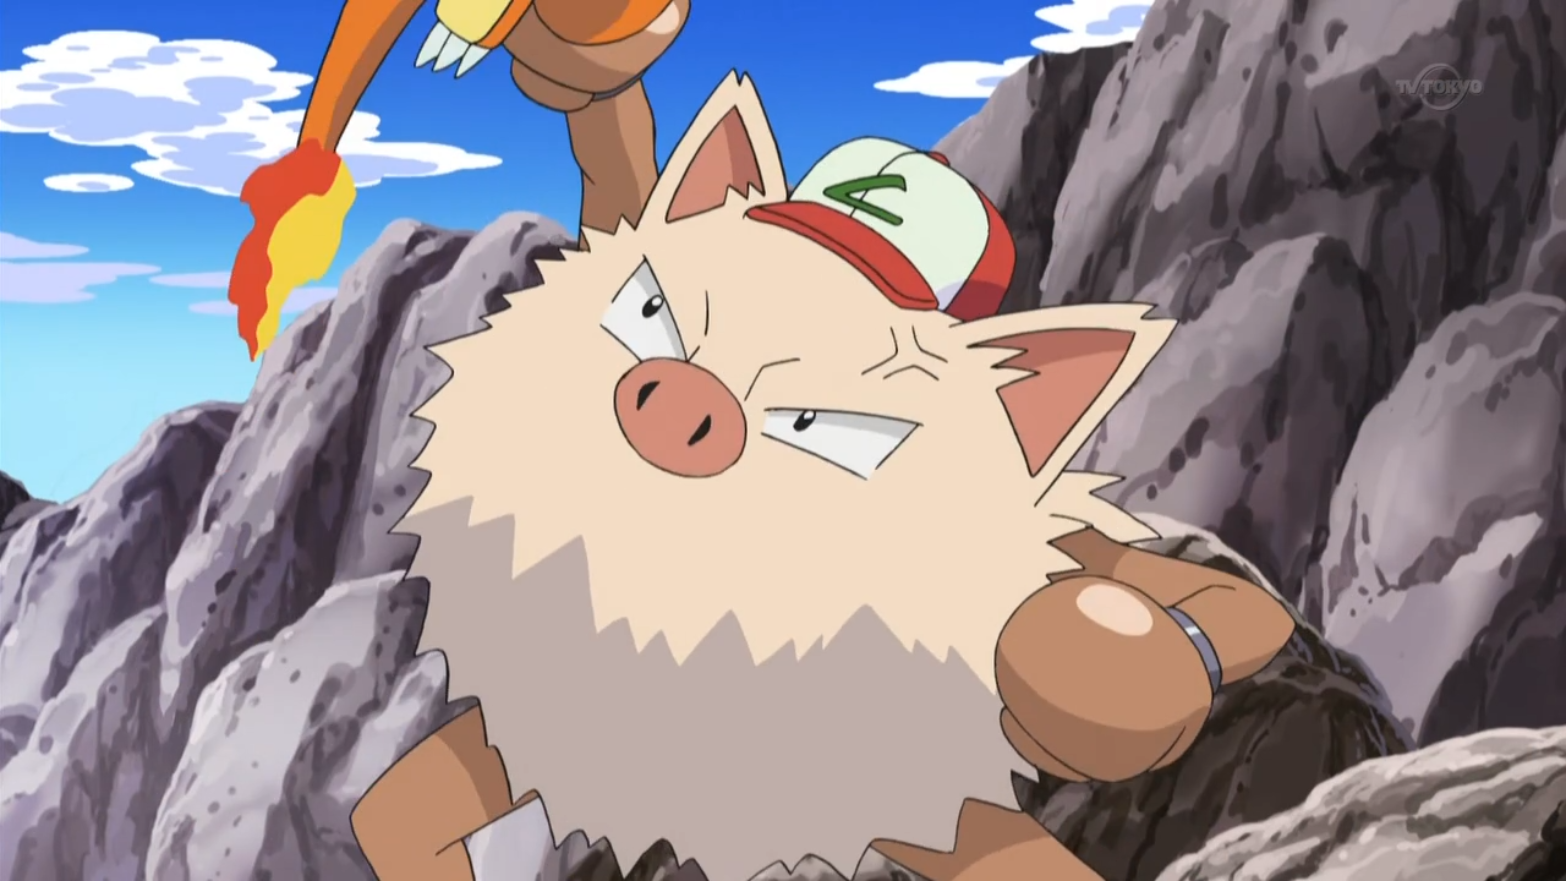 Primeape was originally Ash's. After winning the P1 Grand Prix, Anthony saw its potential and offered to train it to become a true P1 Champ and Ash and Primeape tearfully agreed.